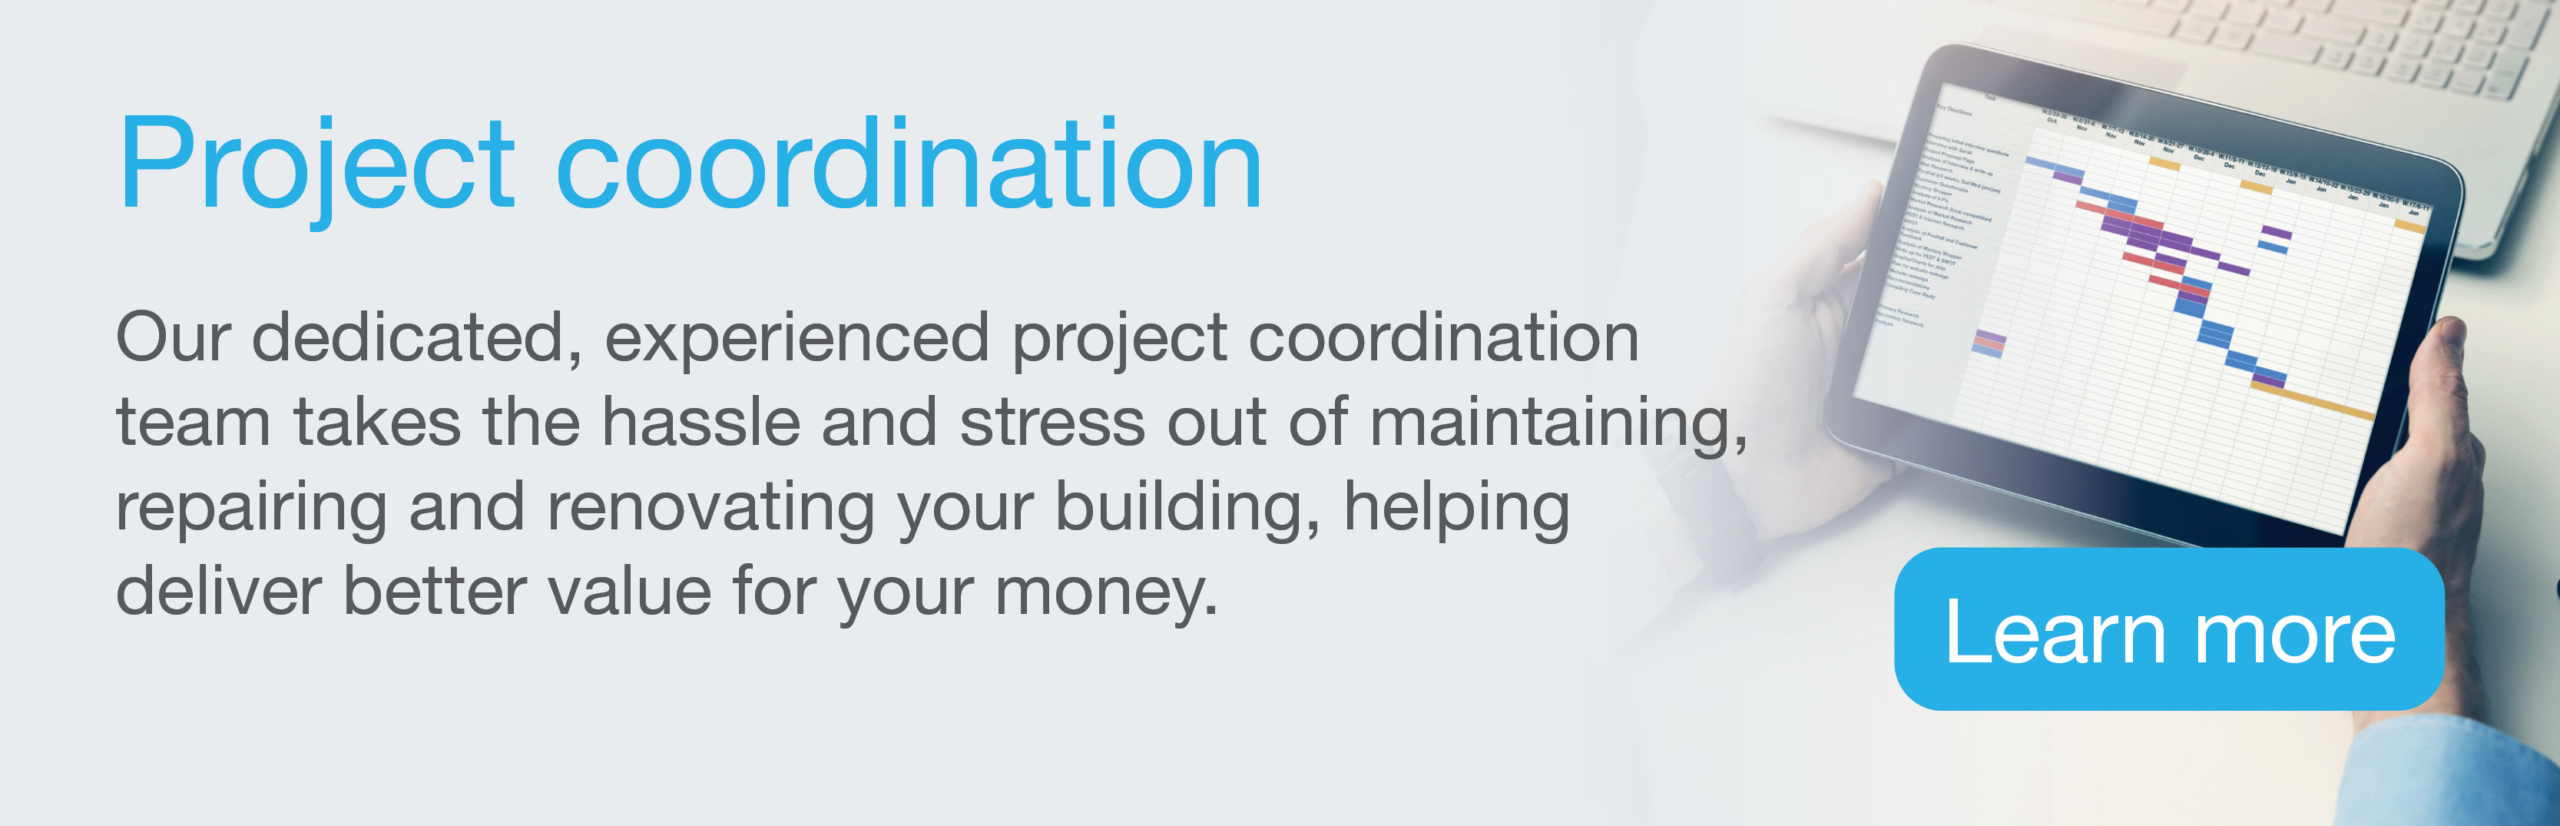 Building Facilities Management Solutions Project coordination